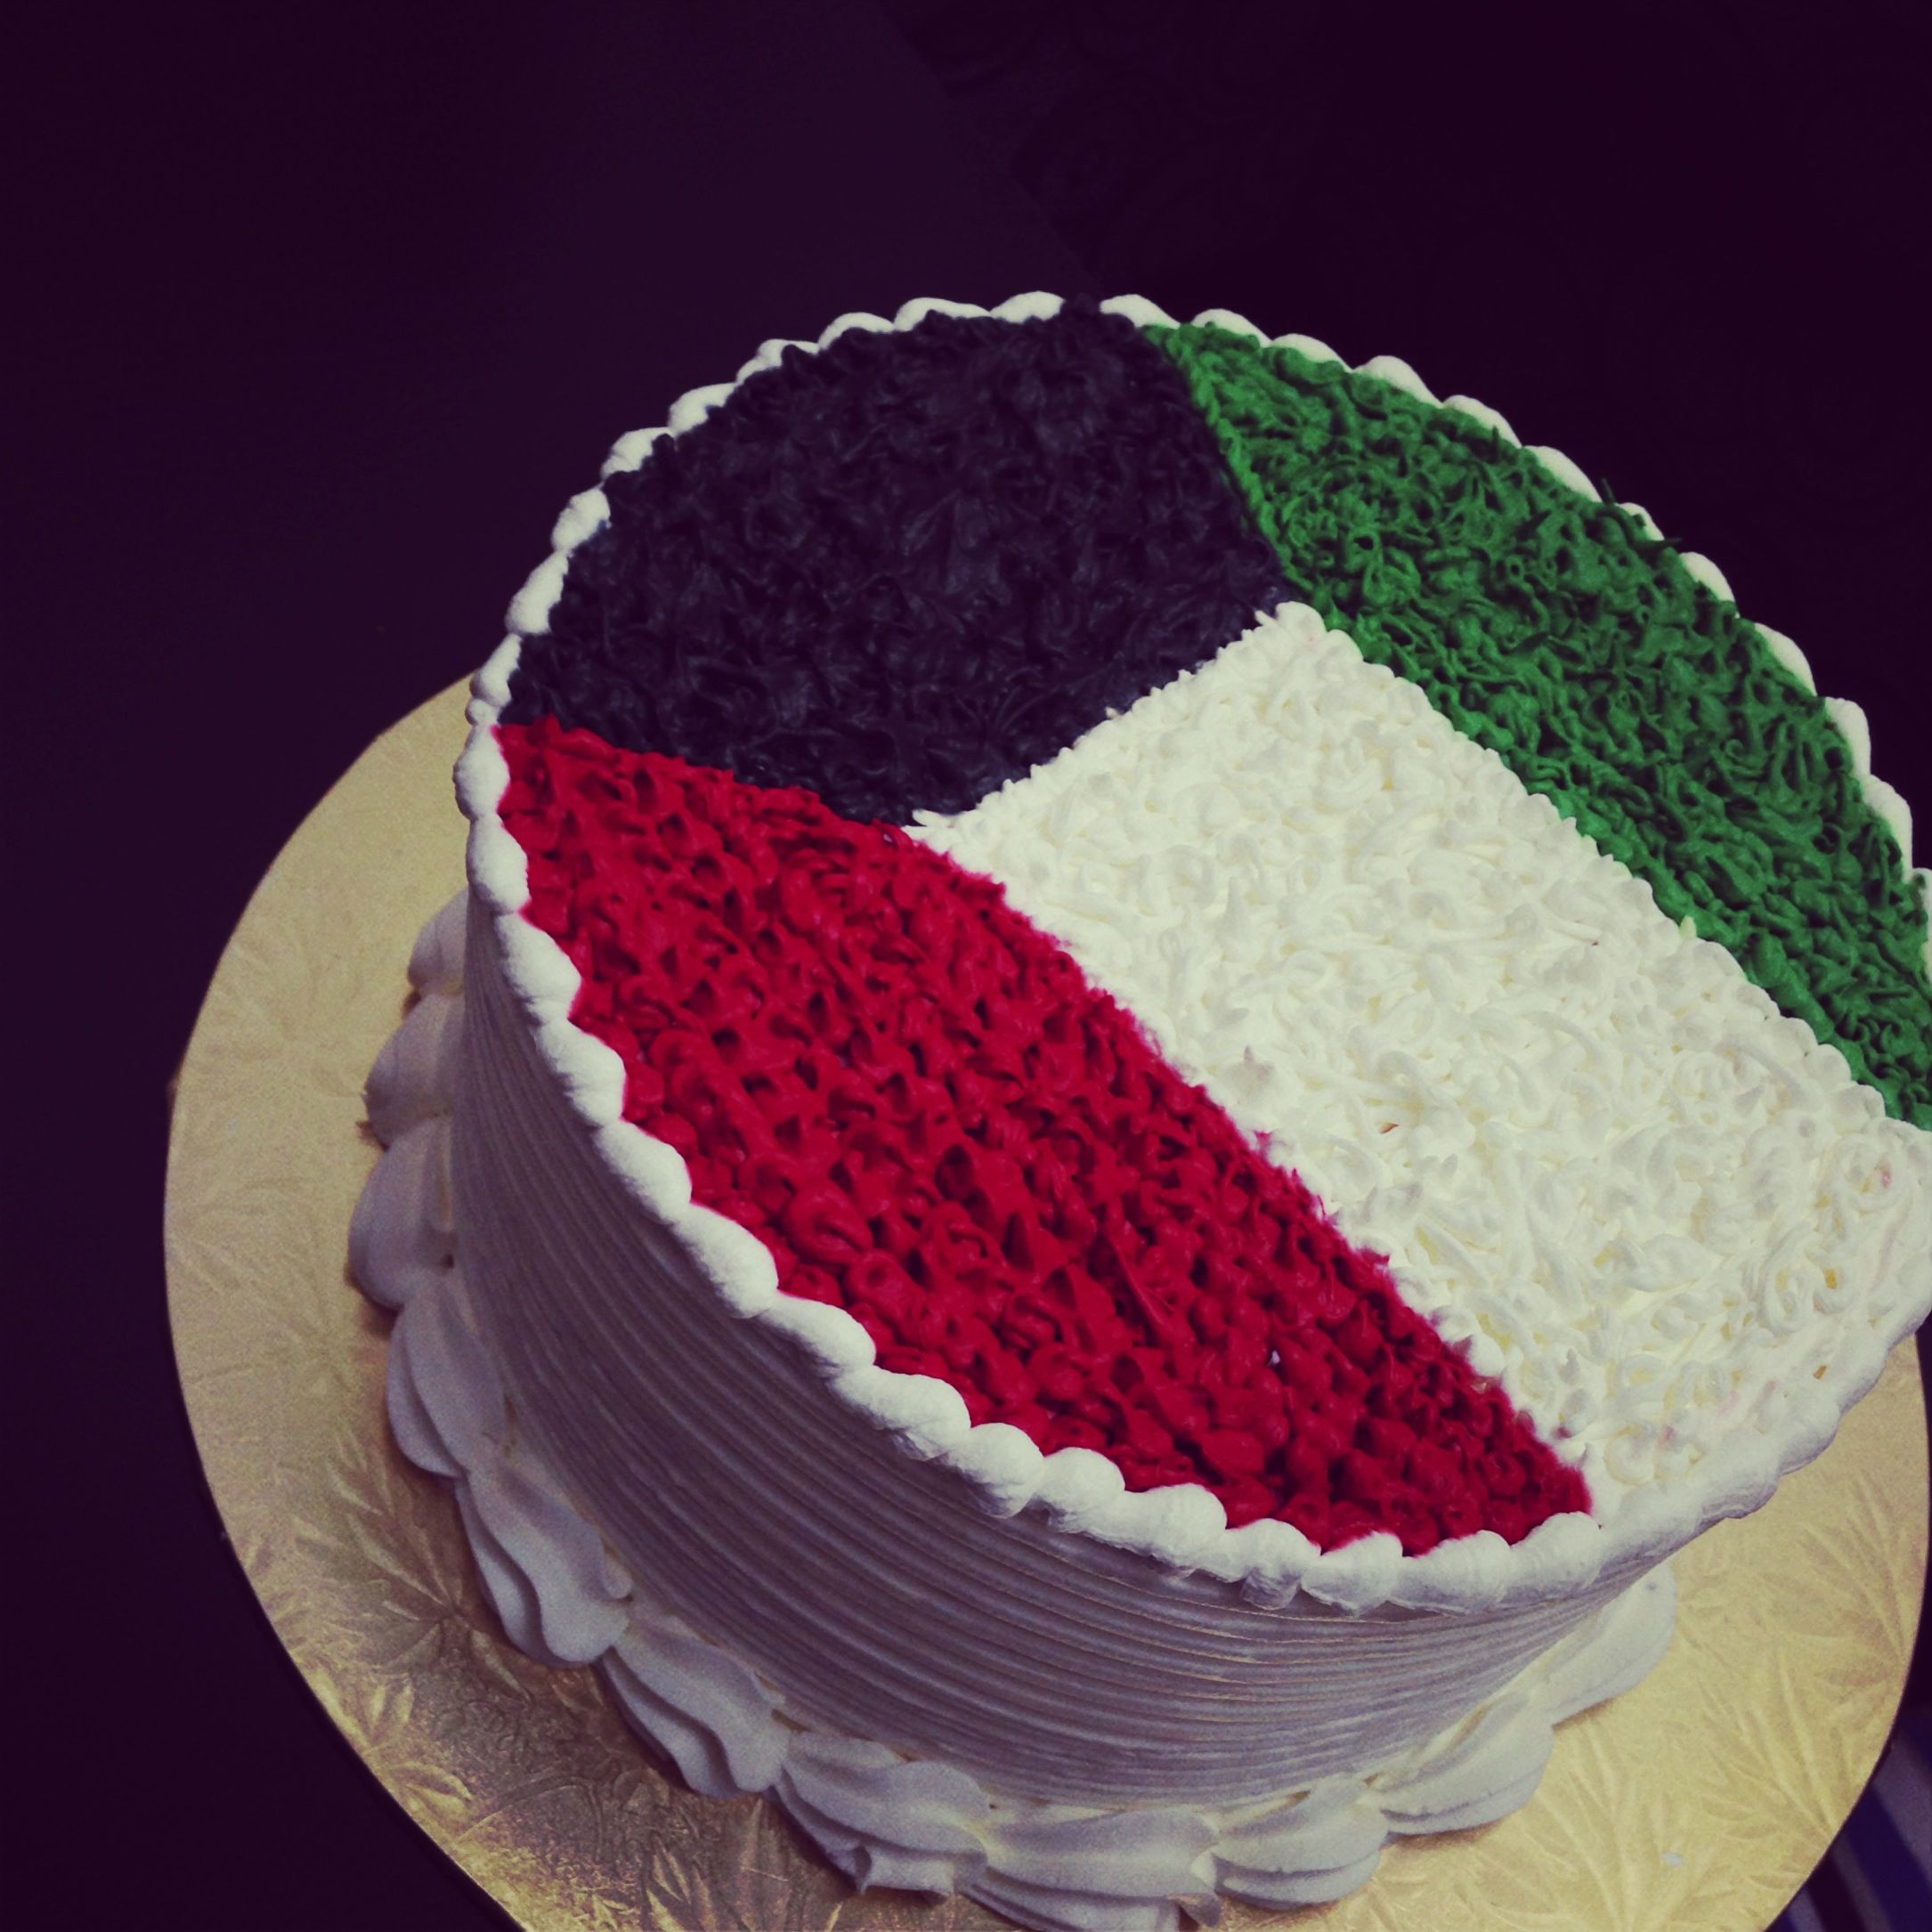 Uae national day cupcakes recipes